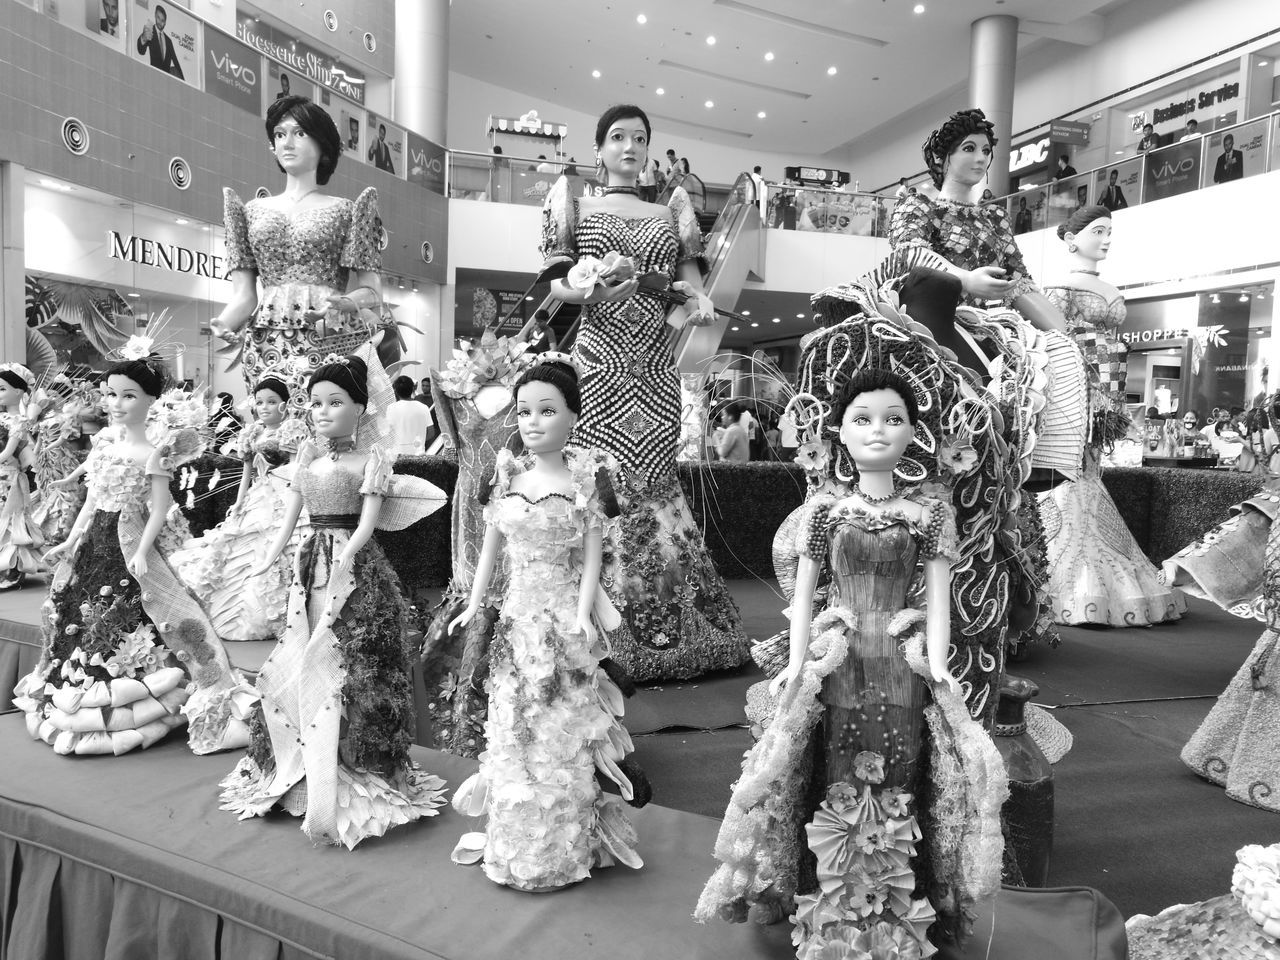 Best EyeEm Shot Black Day Dolls Dollsphotography Filipina Filipino Indoors  Large Group Of People Leisure Activity People Real People Women